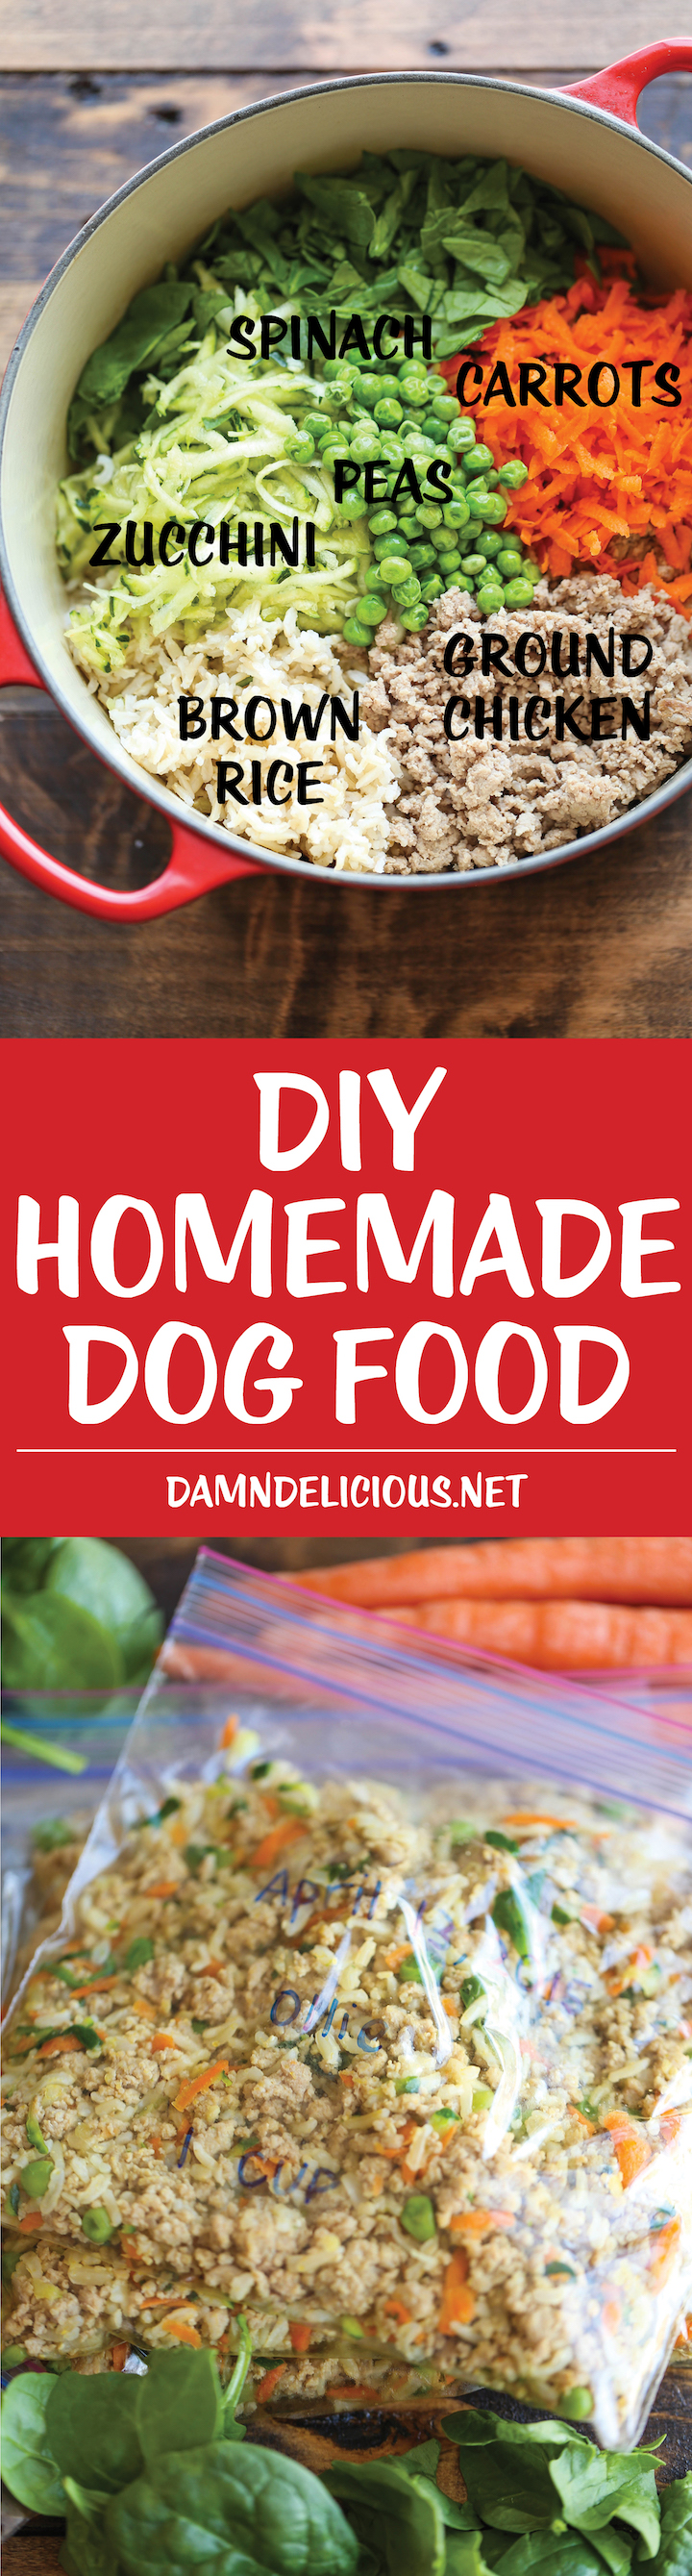 DIY Homemade Dog Food - Keep your dog healthy and fit with this easy peasy homemade